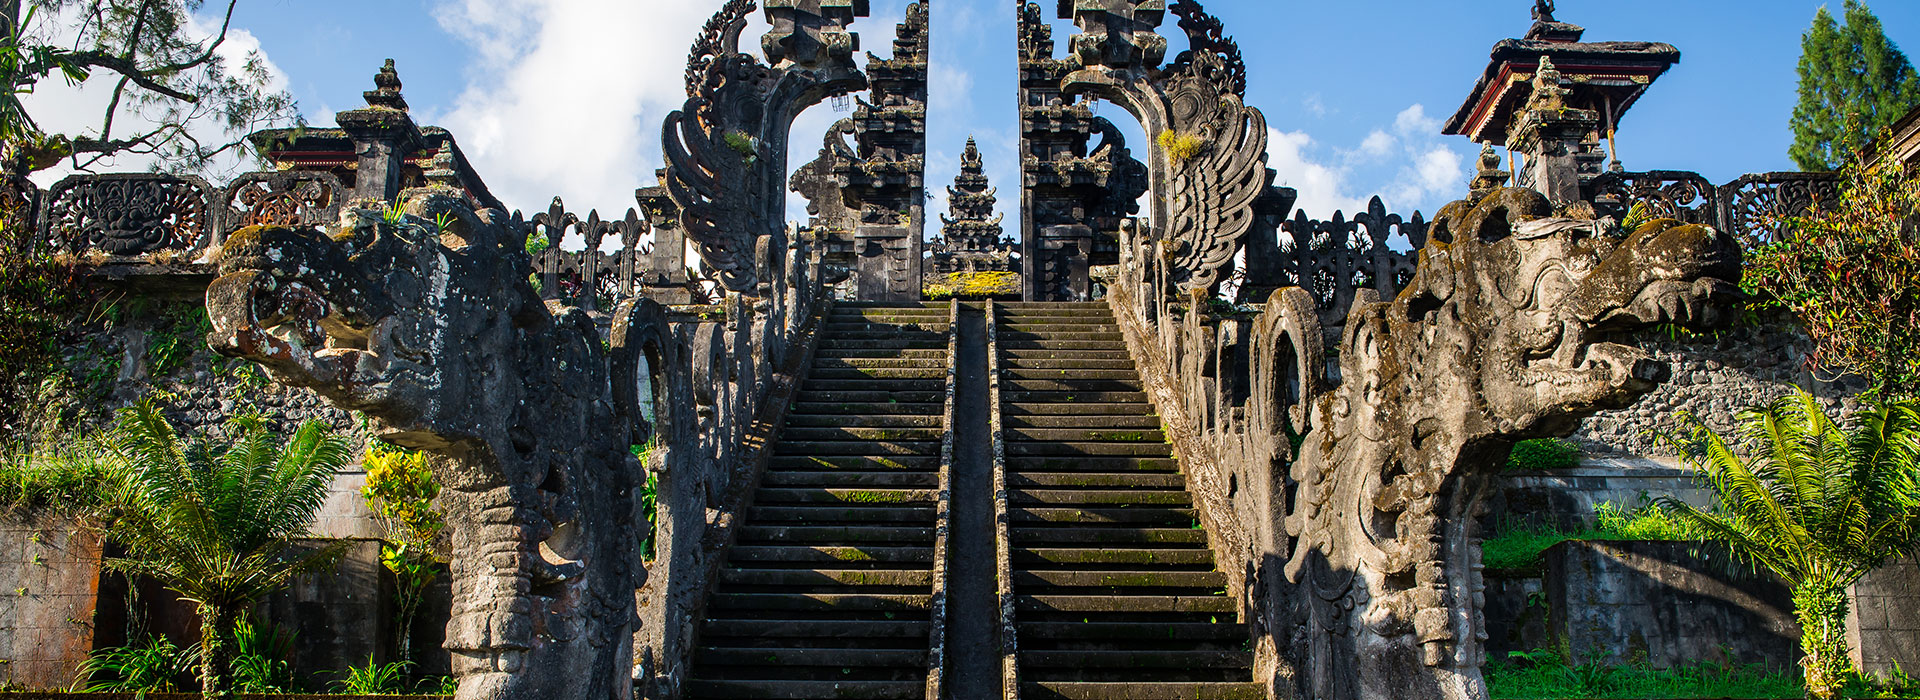 Indonesian stairs